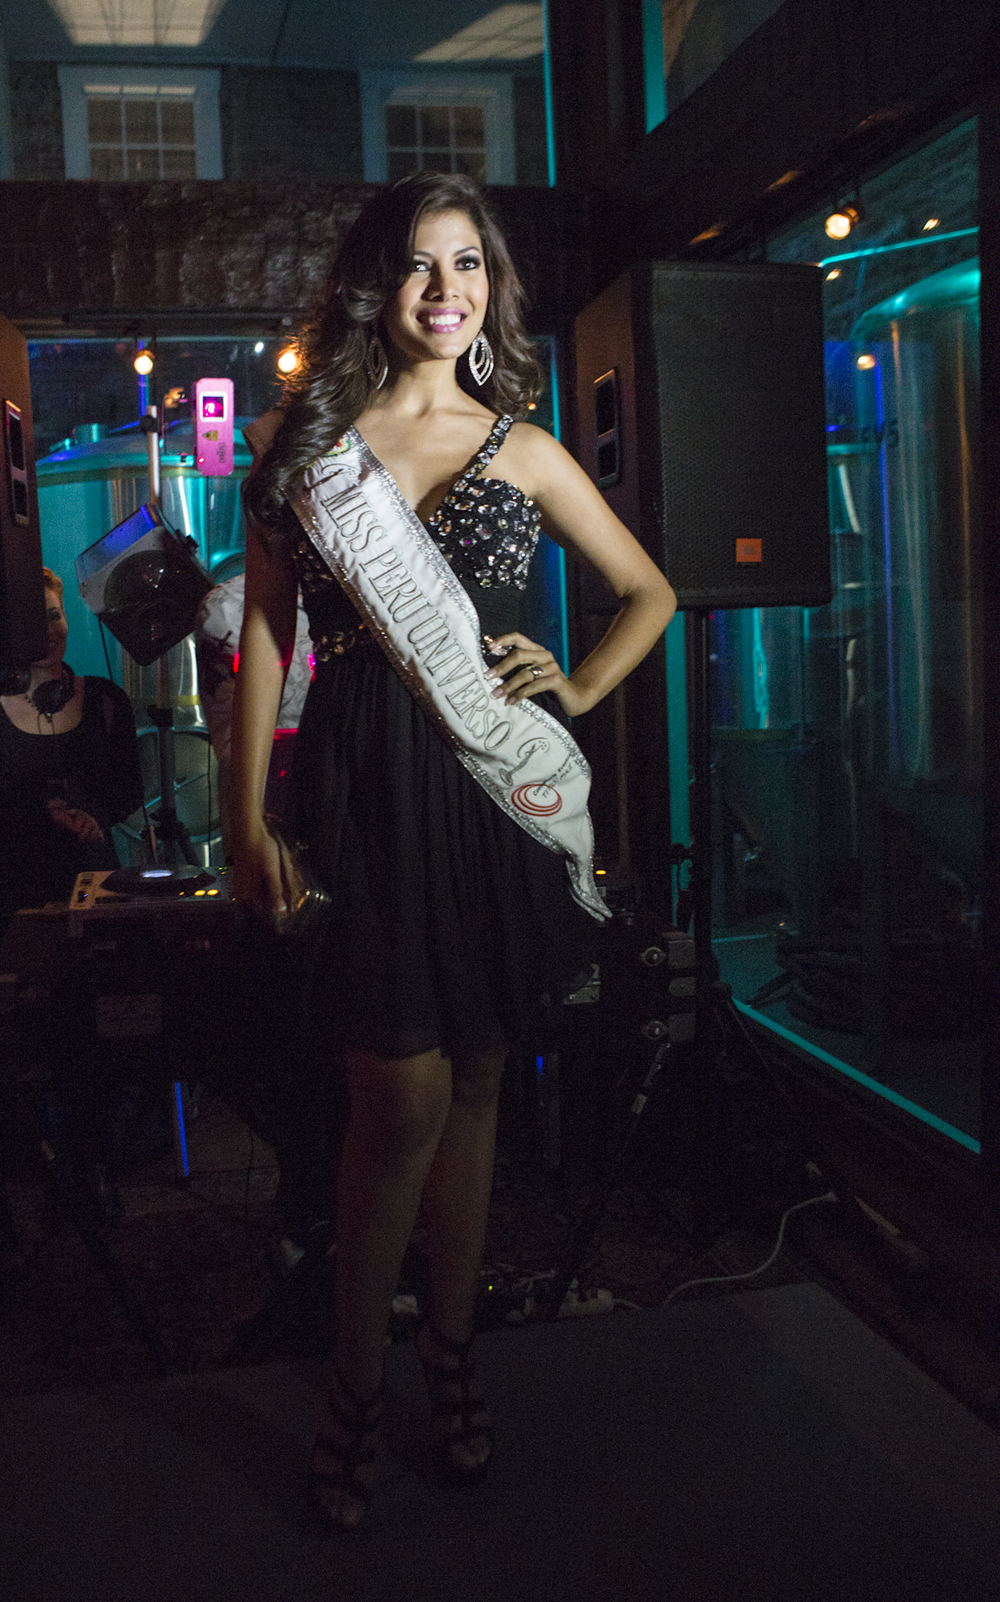 Miss Peru 2014 models during the fashion show at Darwin's Restaurant.  © Karen Arango